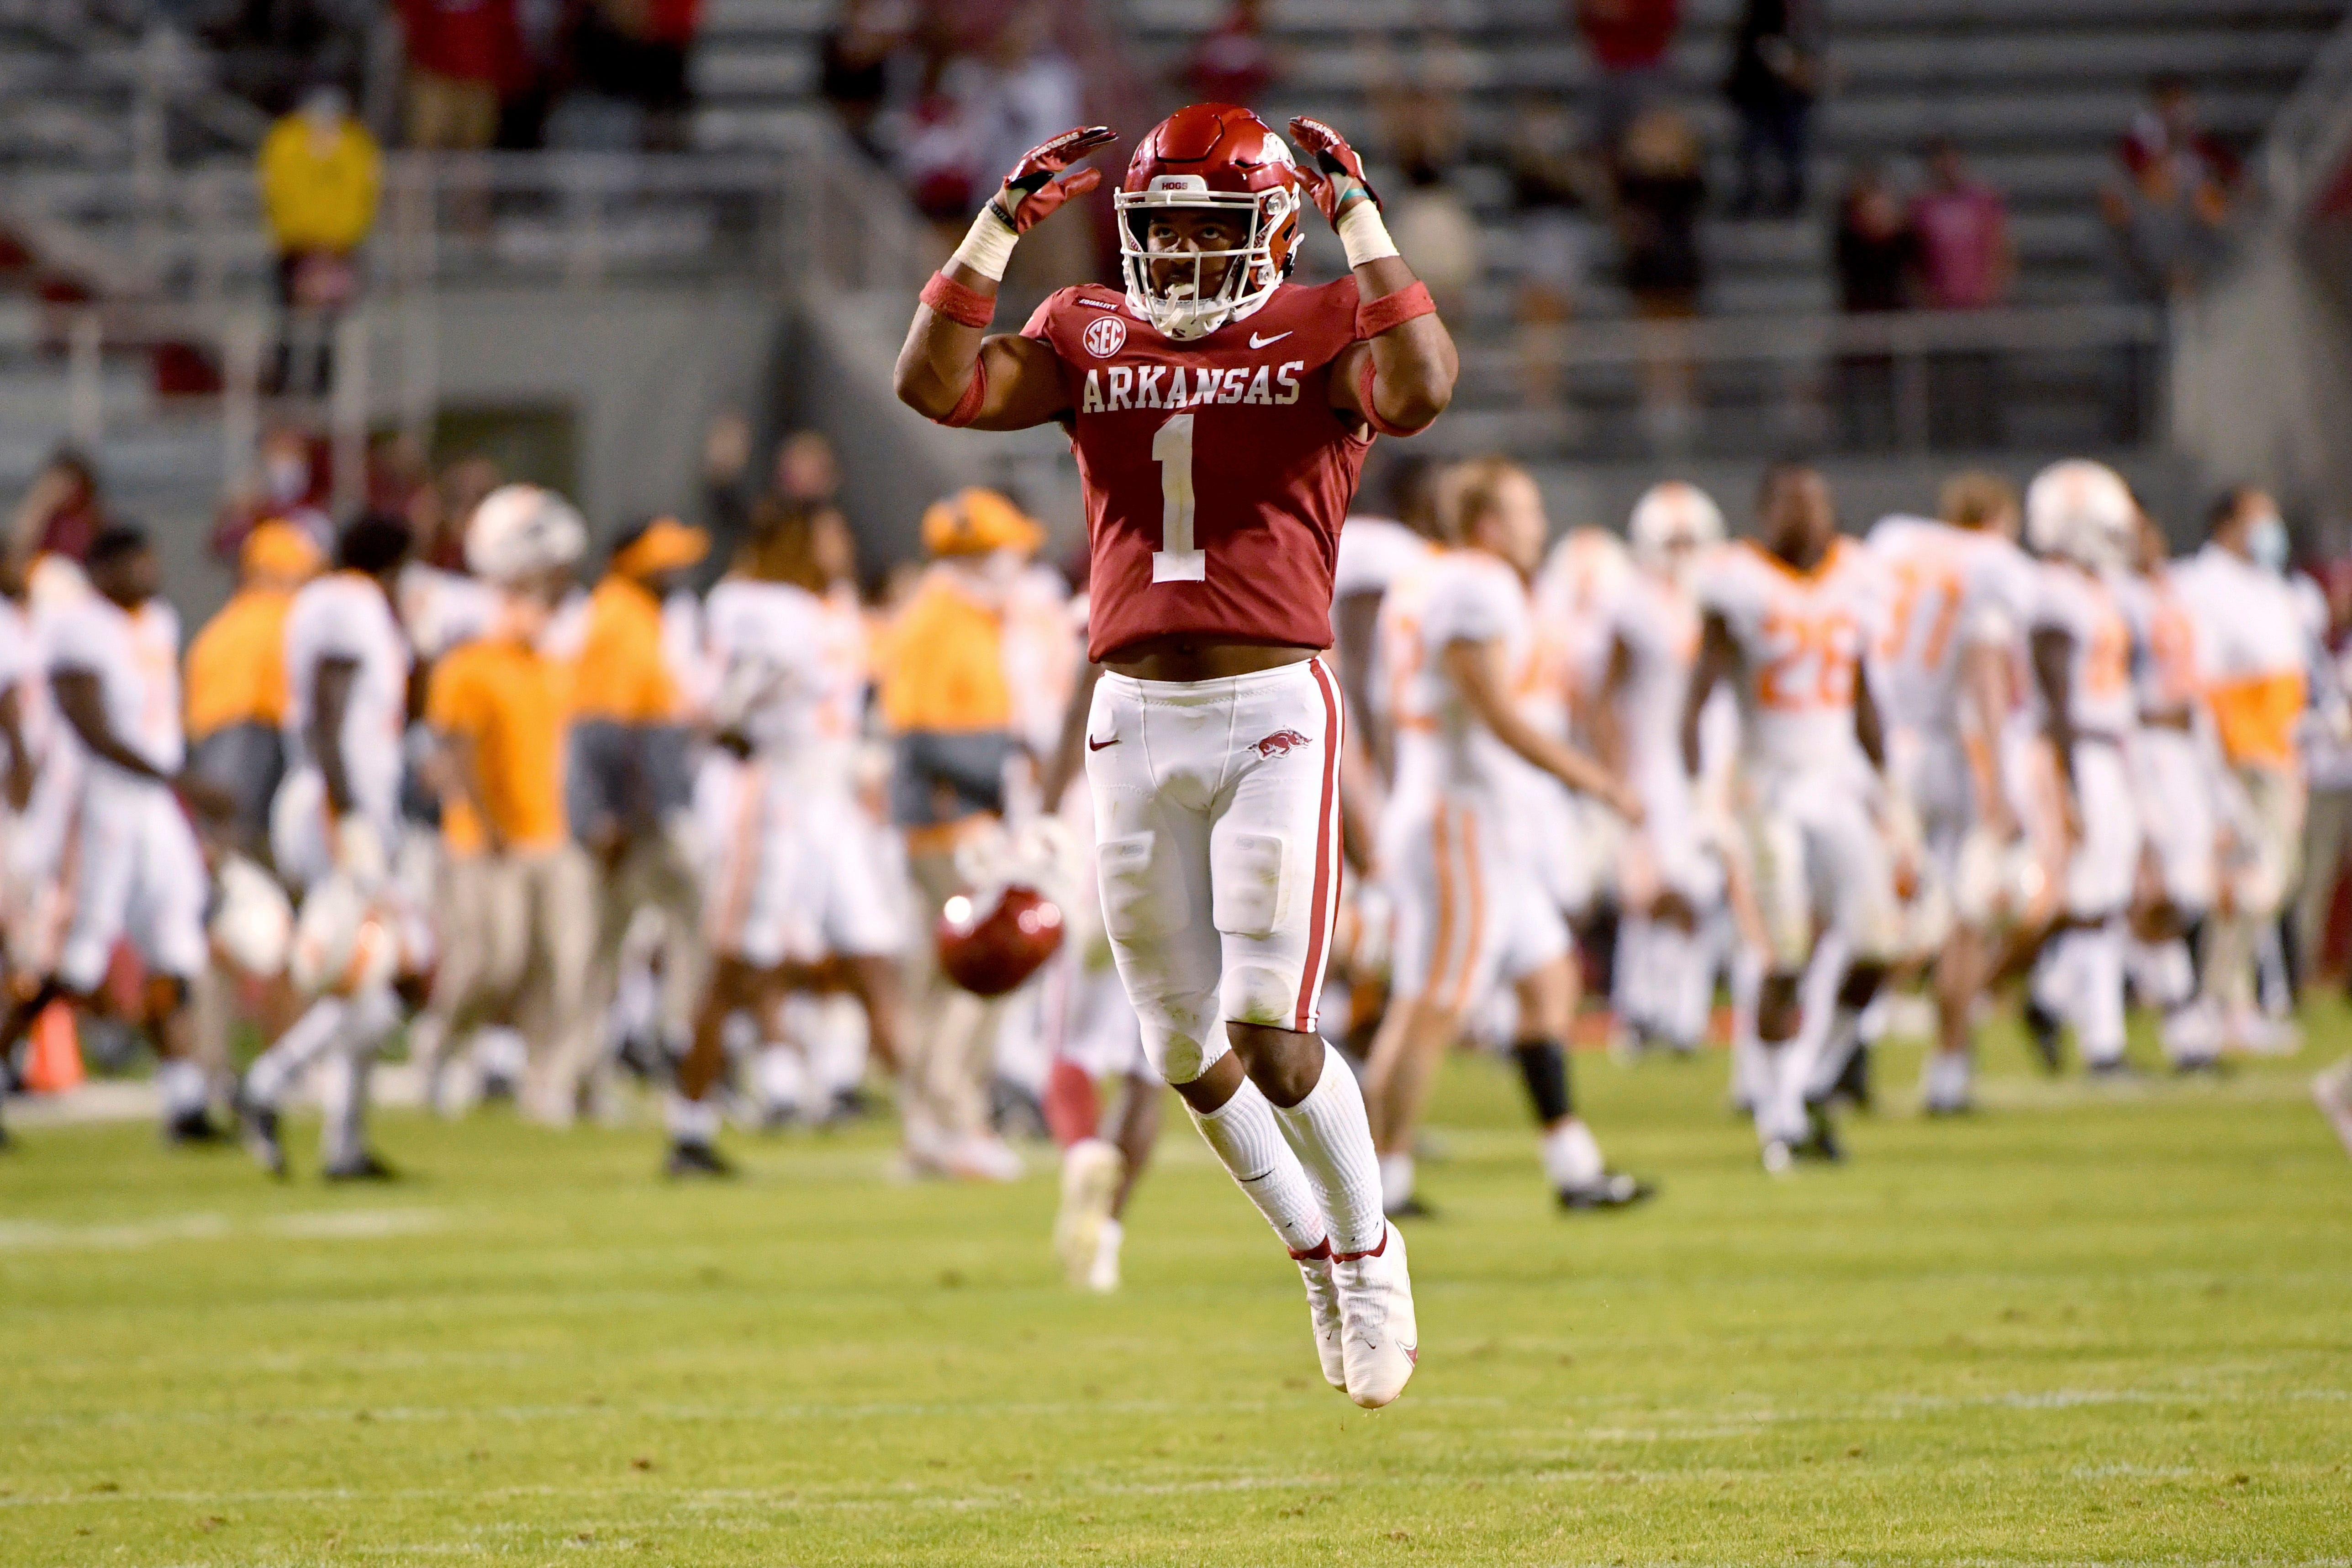 Arkansas DB Jalen Catalon Ejected For Targeting Vs LSU Football